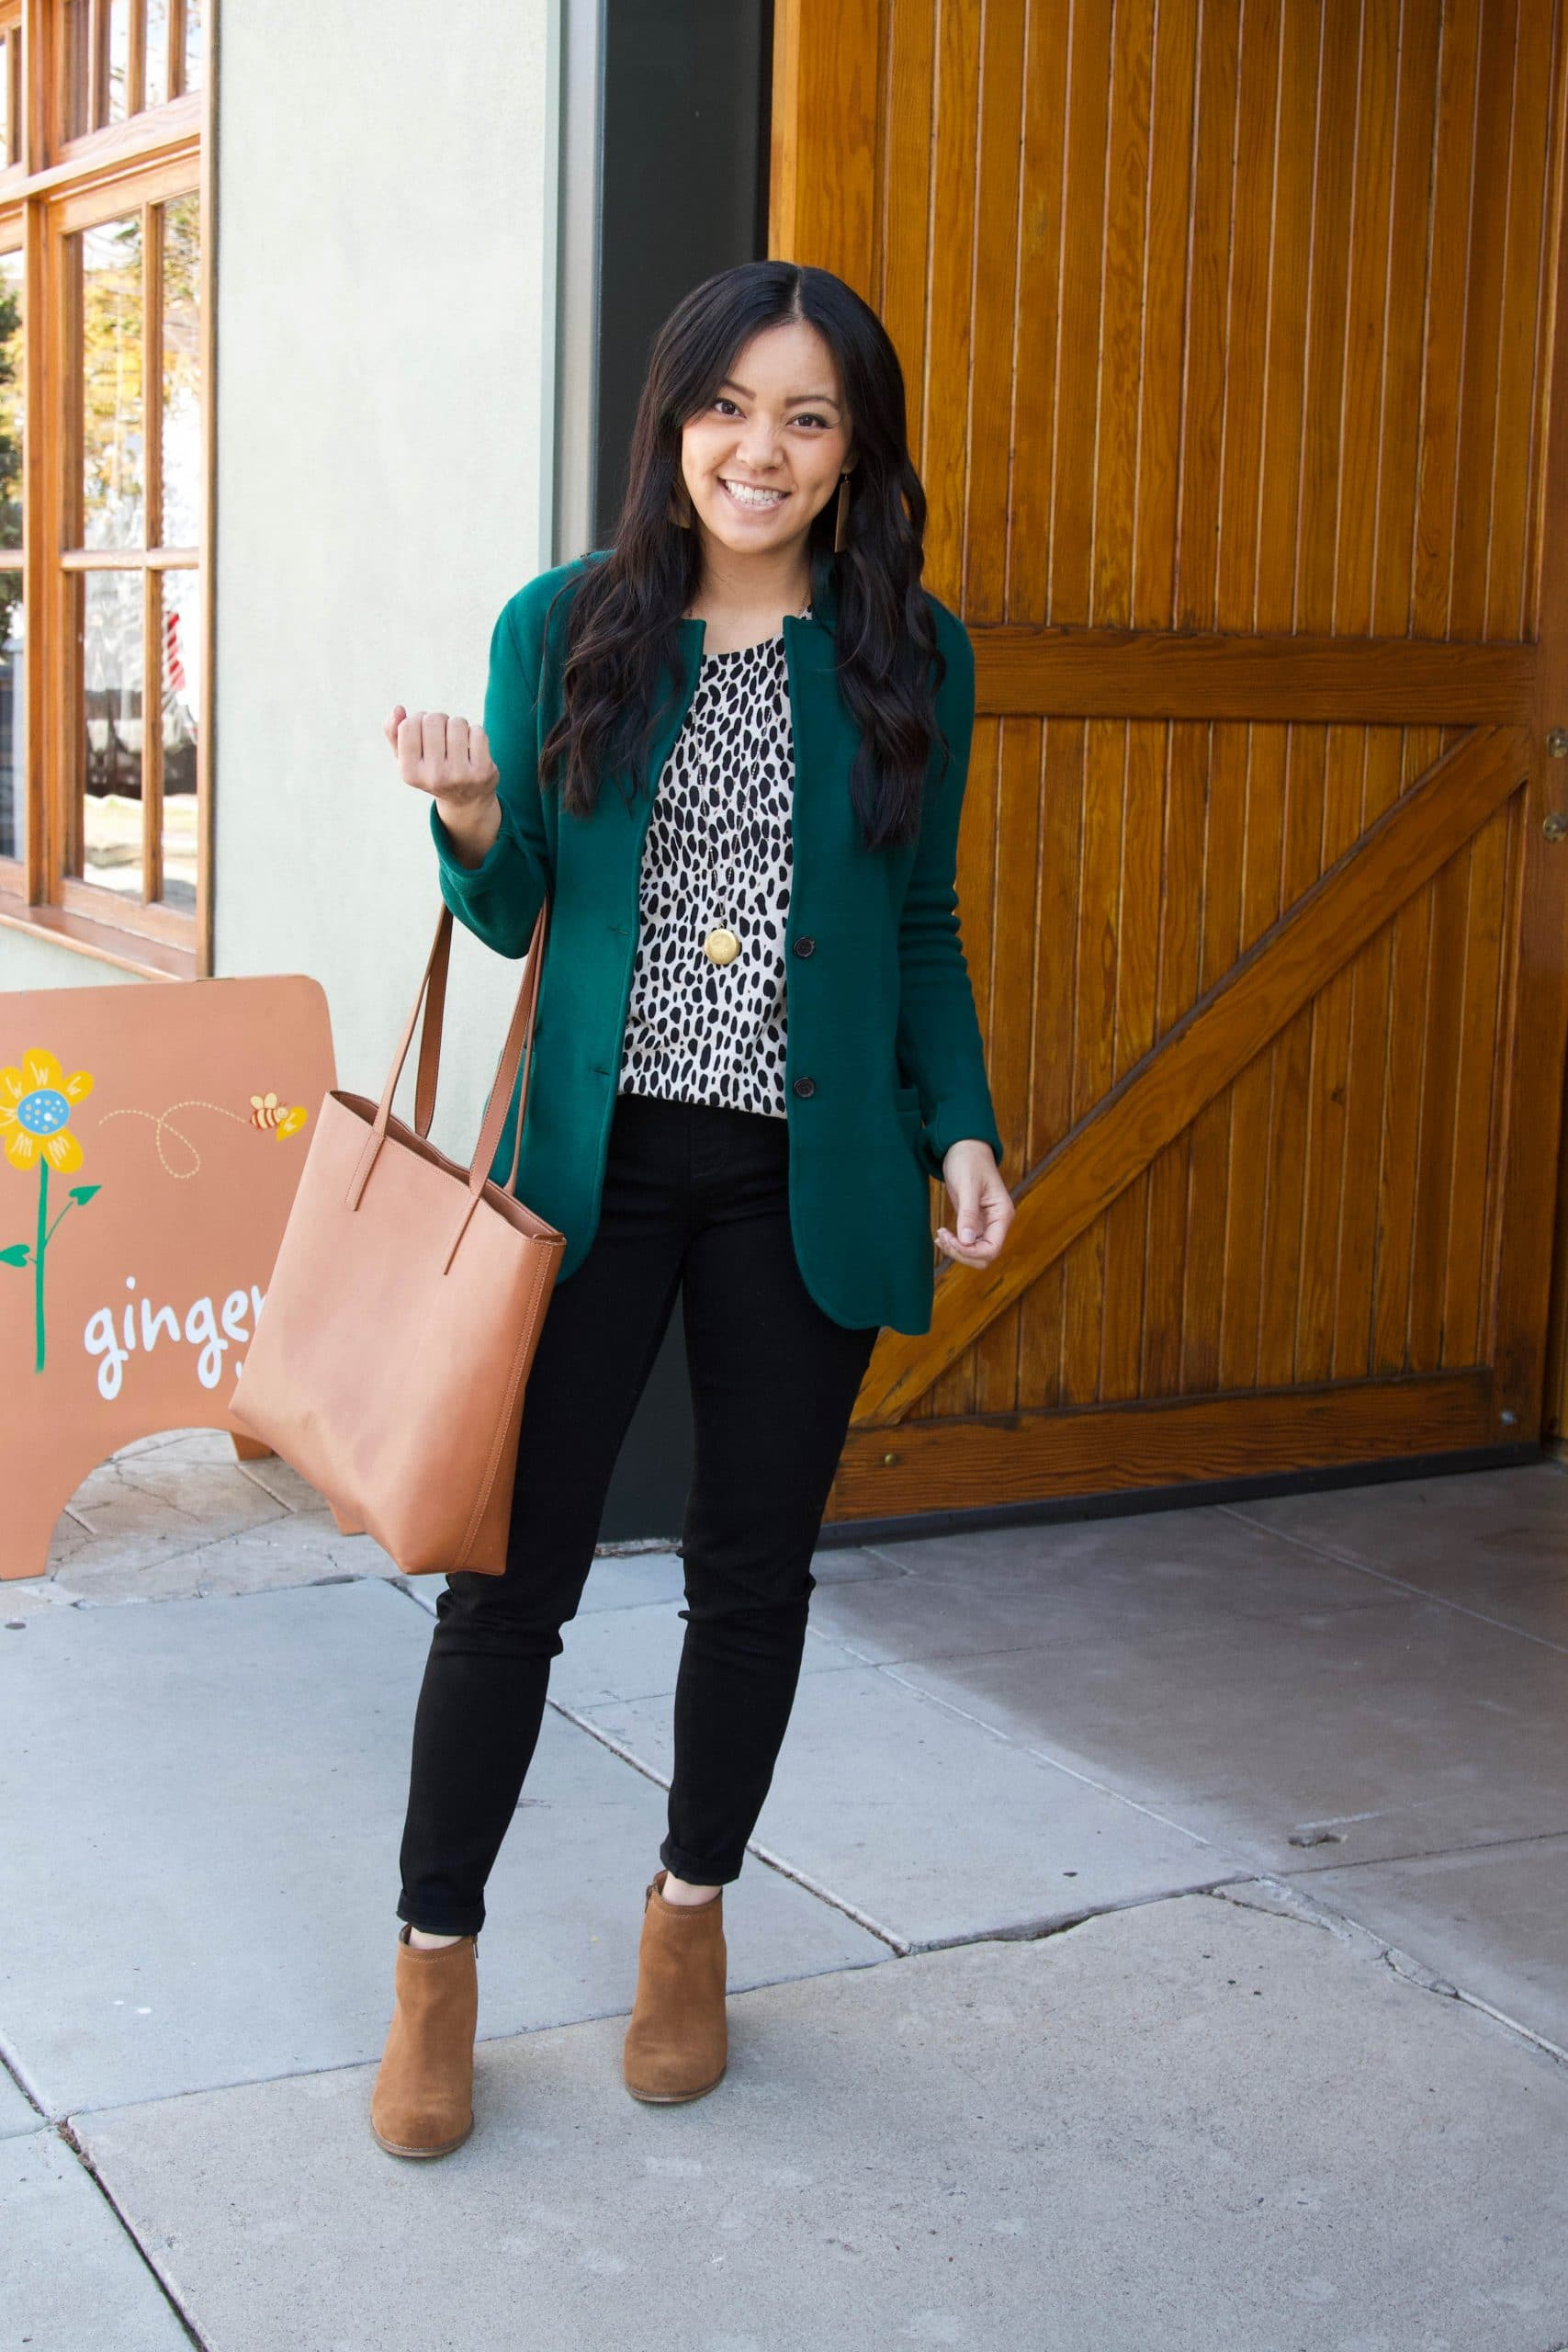 Winter Business Casual Pants Outfit: animal print sweater + green sweater blazer + black jeans + cognac booties + cognac tote + gold pendant necklace